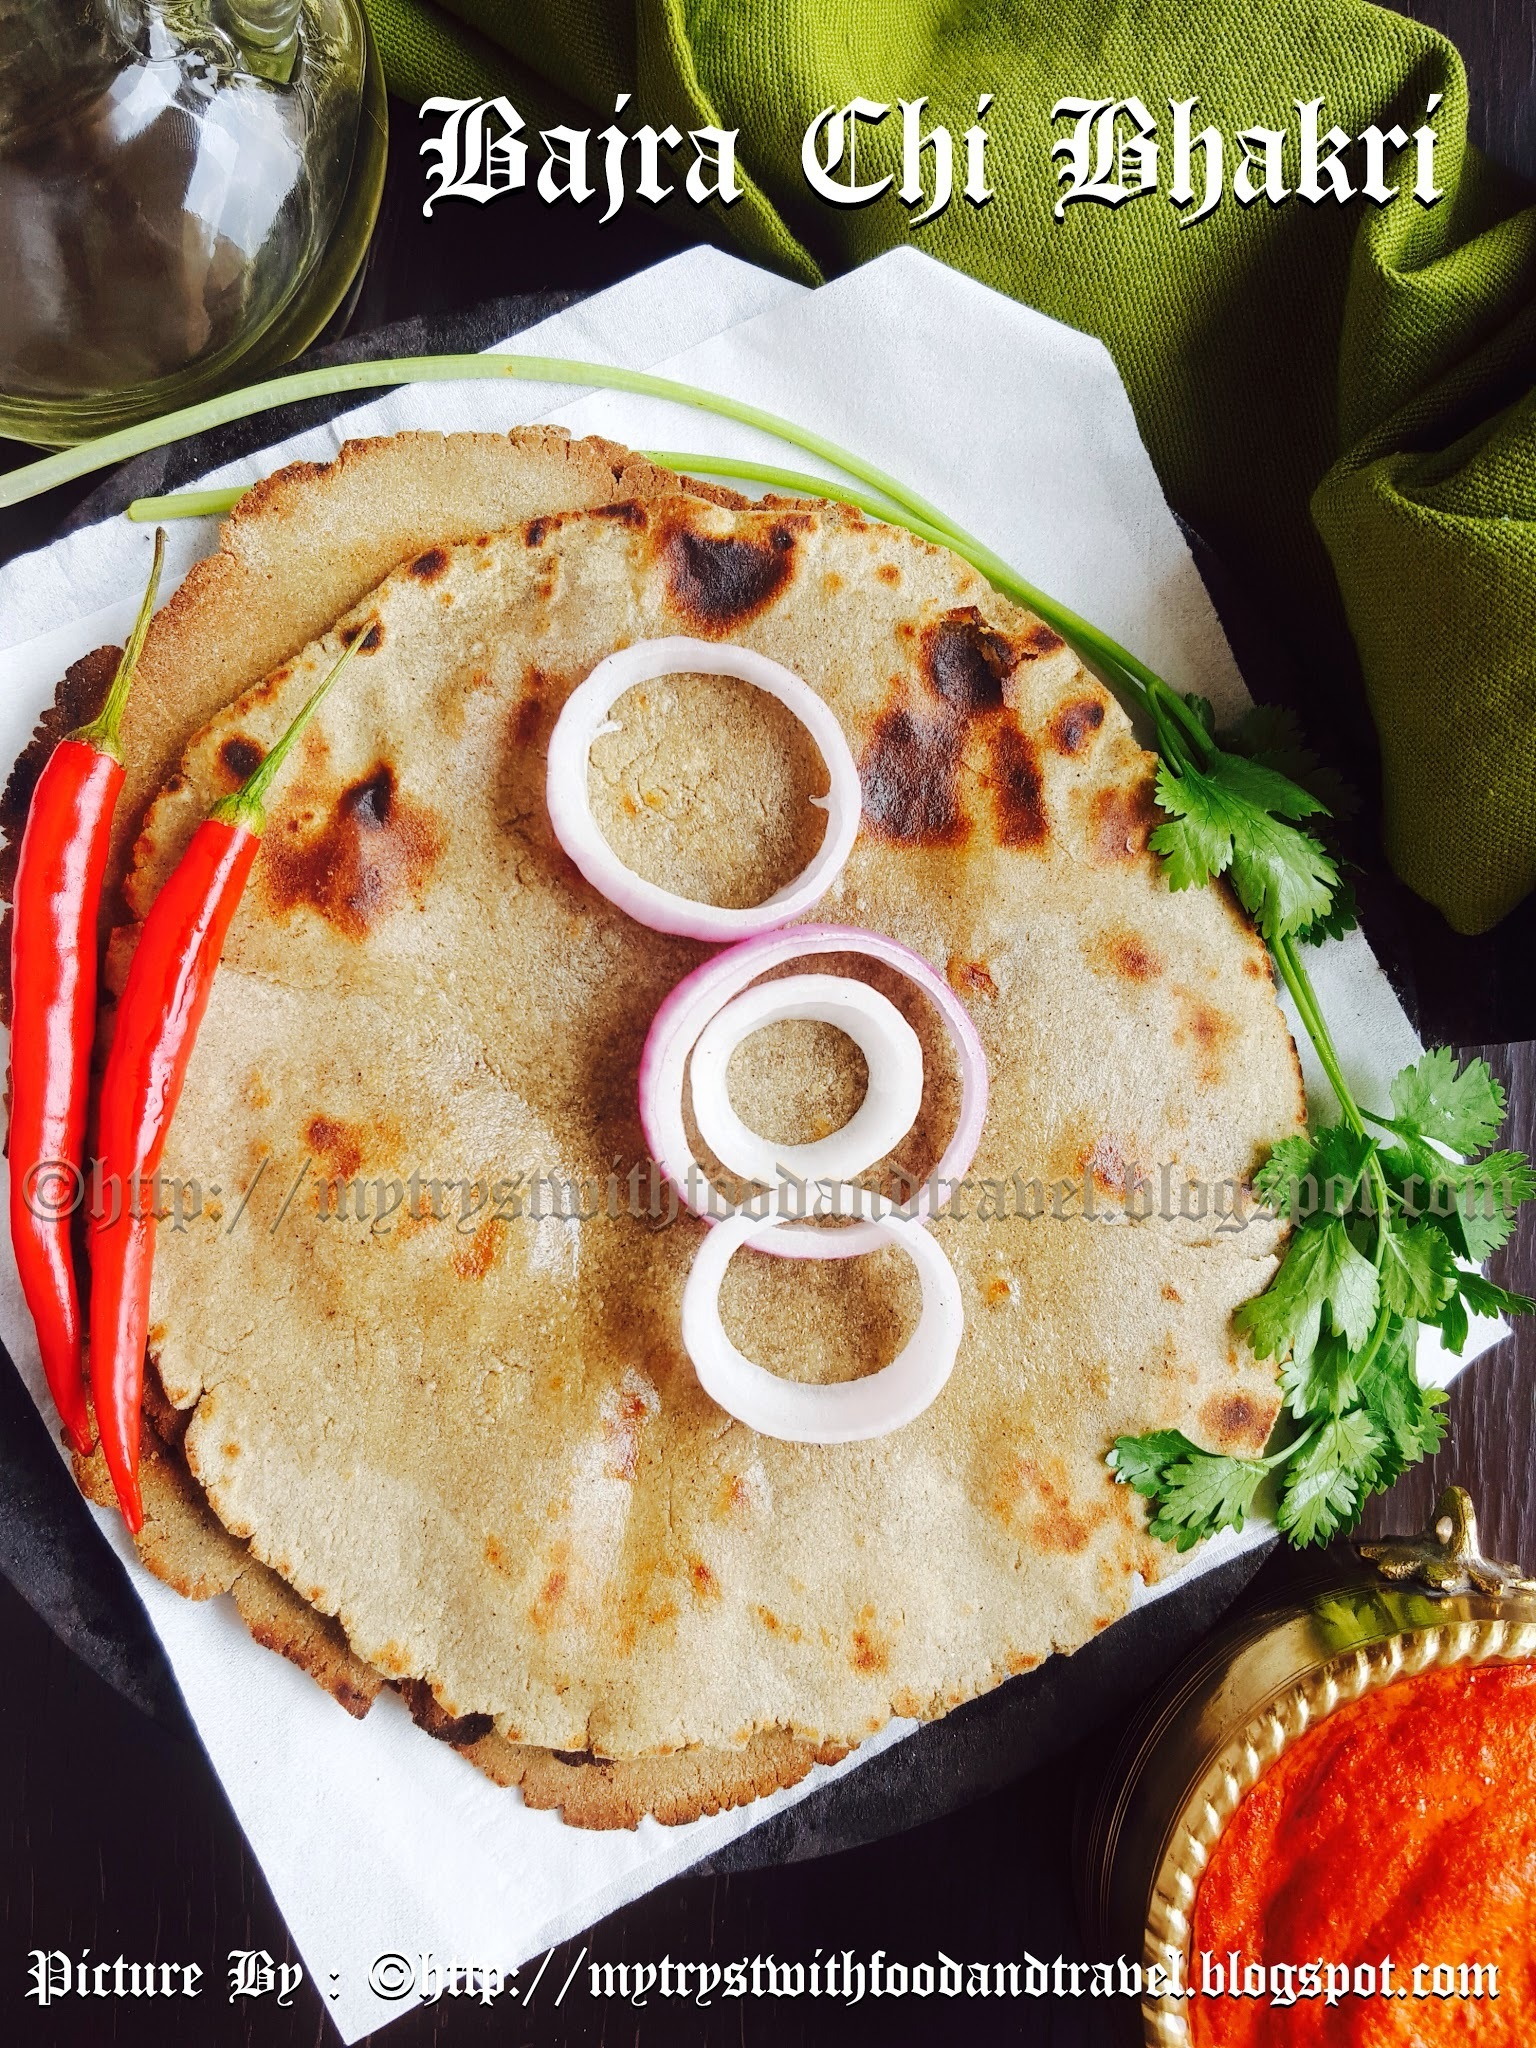 Bajra Chi Bhakri Recipe / Bajra Roti Recipe / Indian Flat Bread Made With Pearl Millet Flour Recipe ~ Maharashtrian Cuisine